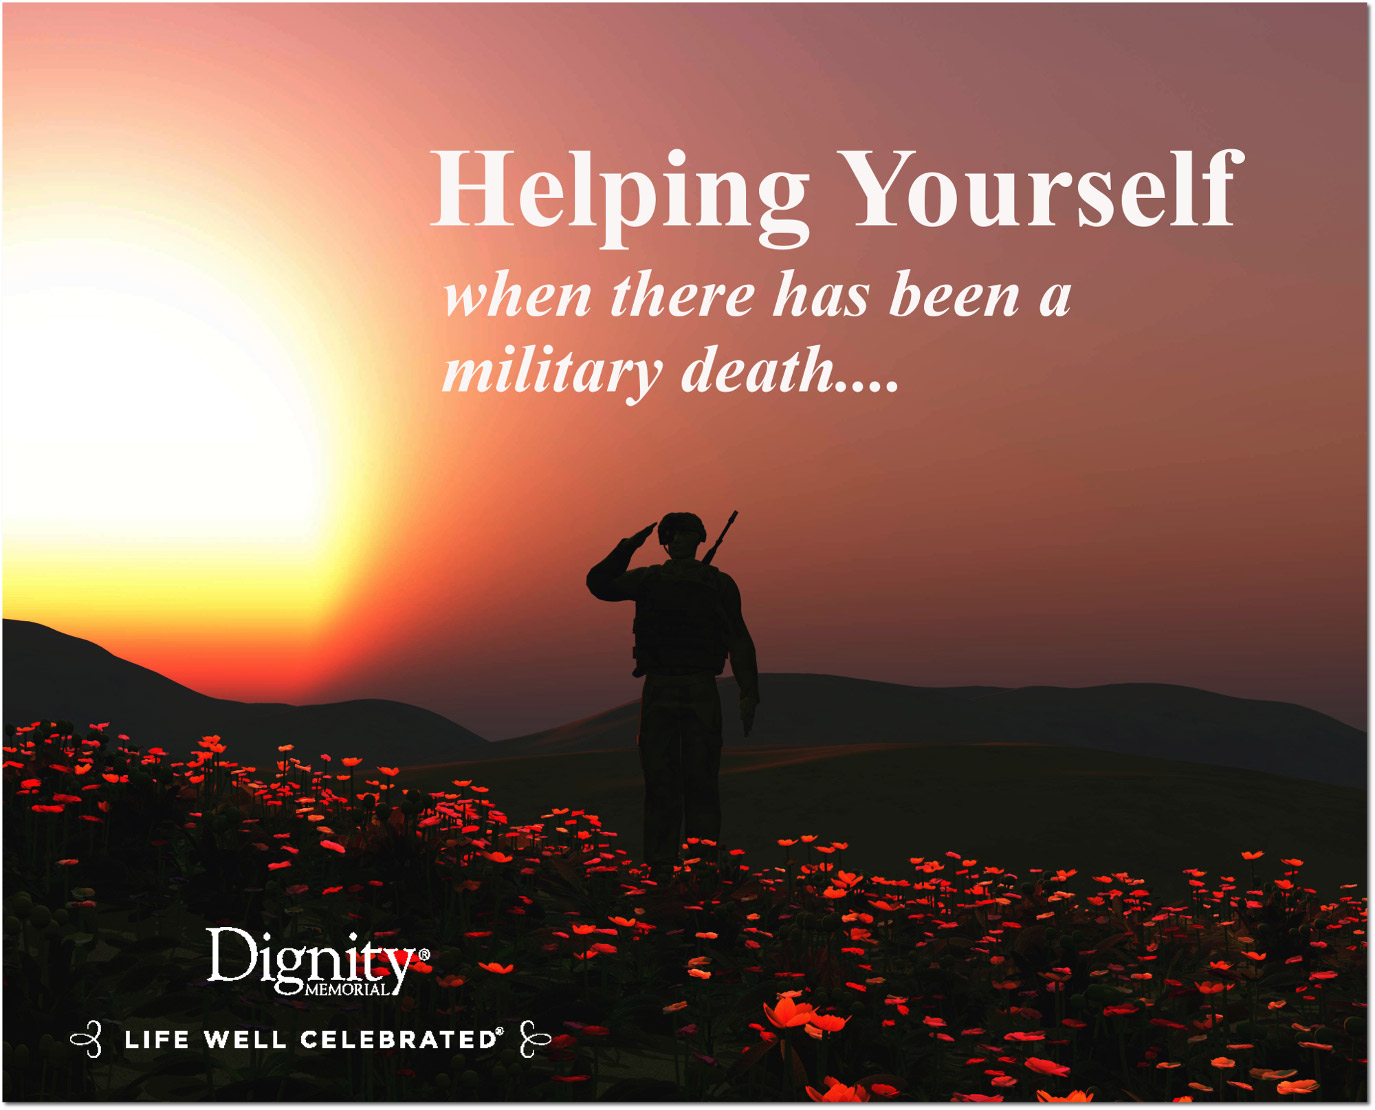 Helping yourself when there has been a military death